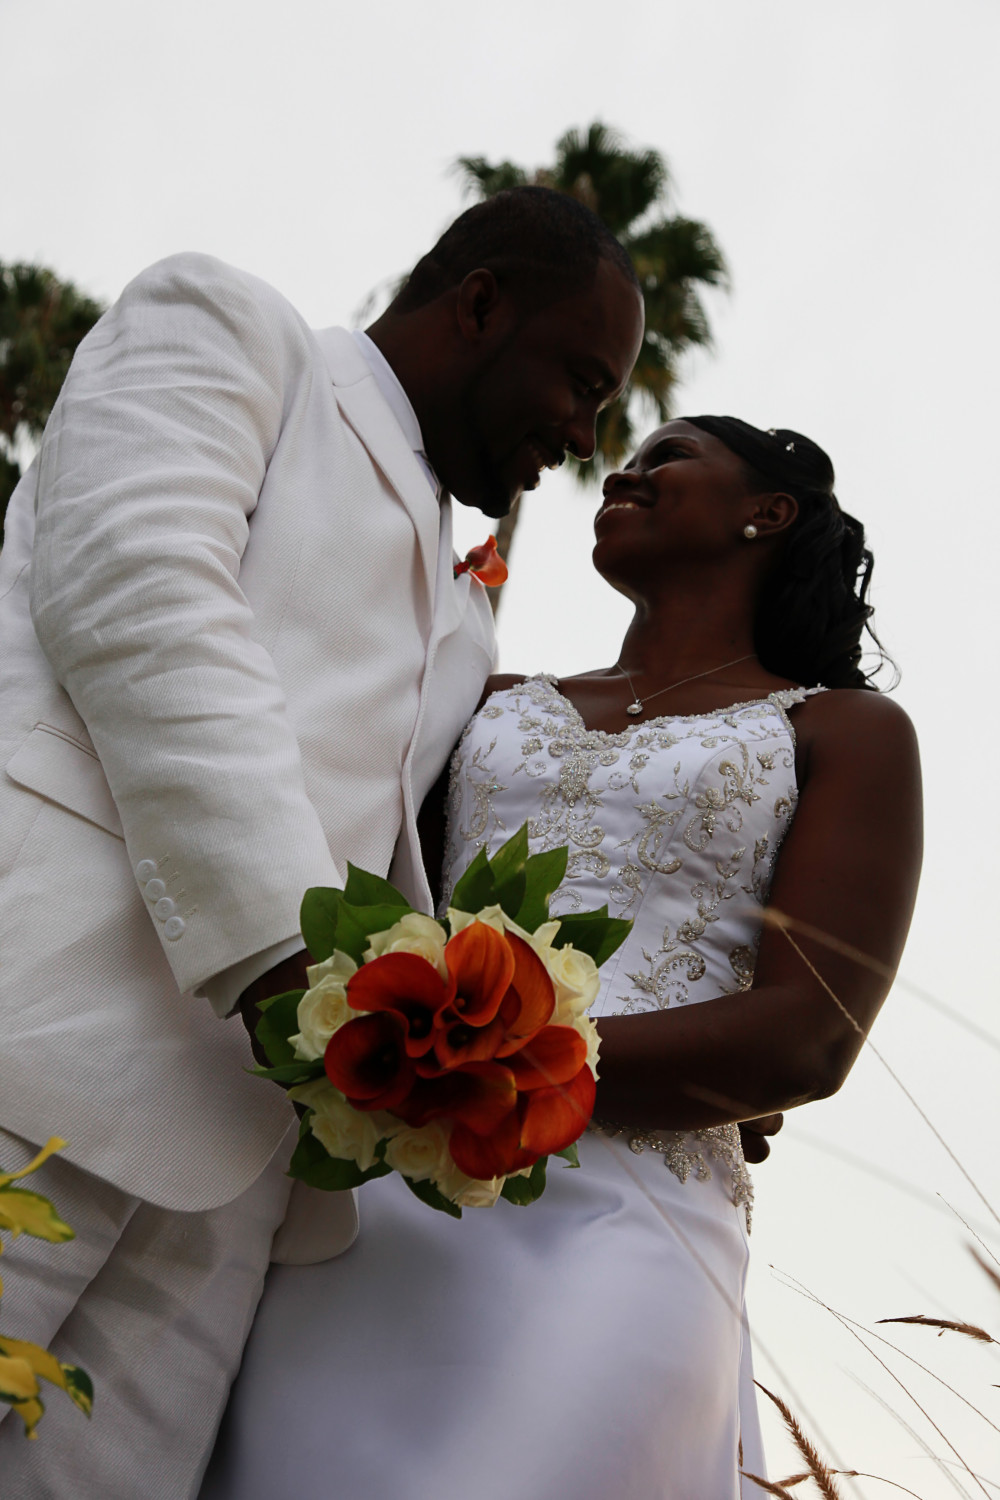 Money Matters with Nimi Akinkugbe: Love is In the Air… But Have You Considered Your Financial Future?